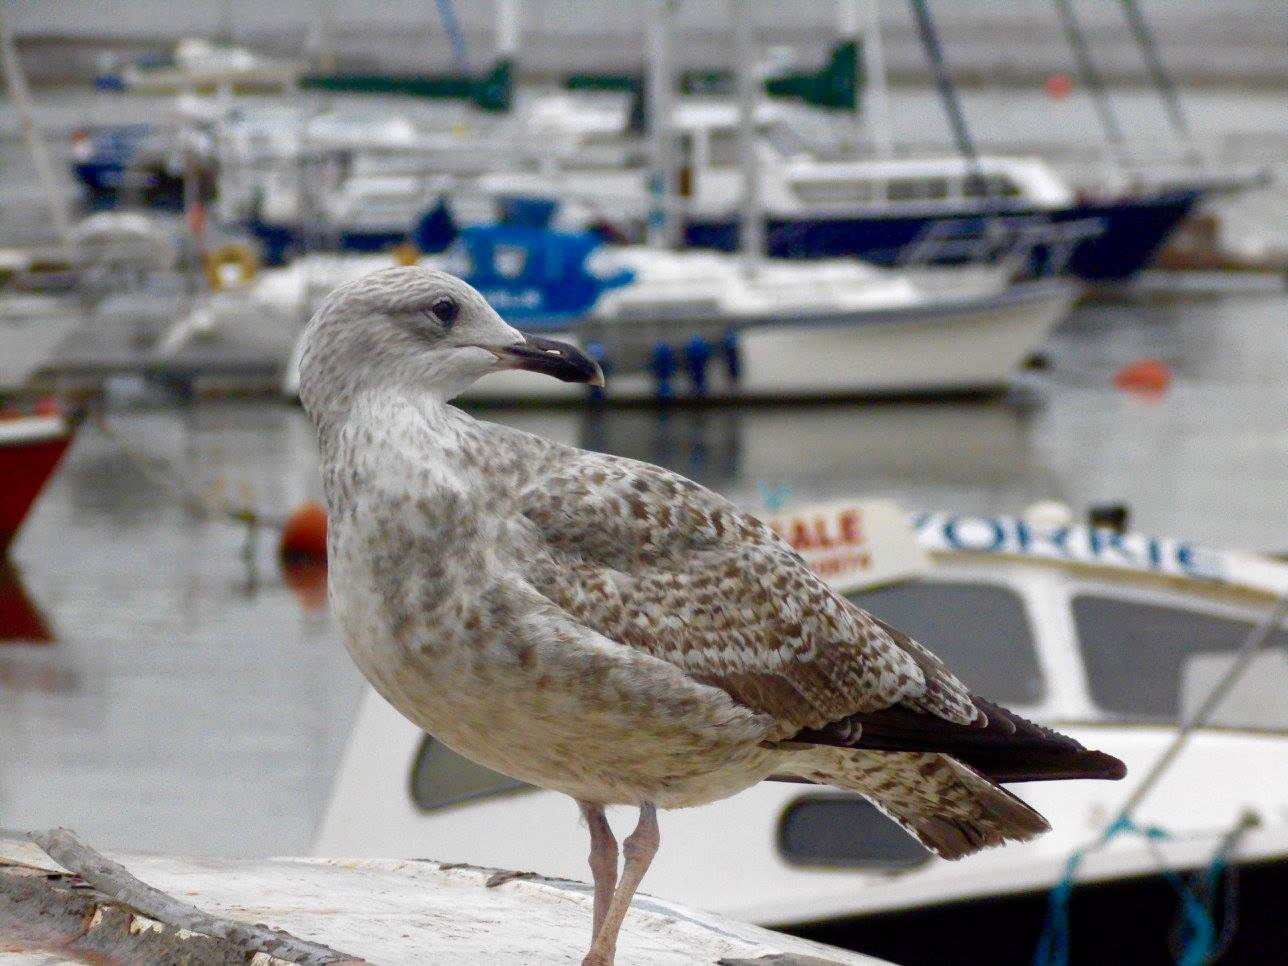 Seagulls are a common sighting here in Conwy, Wales